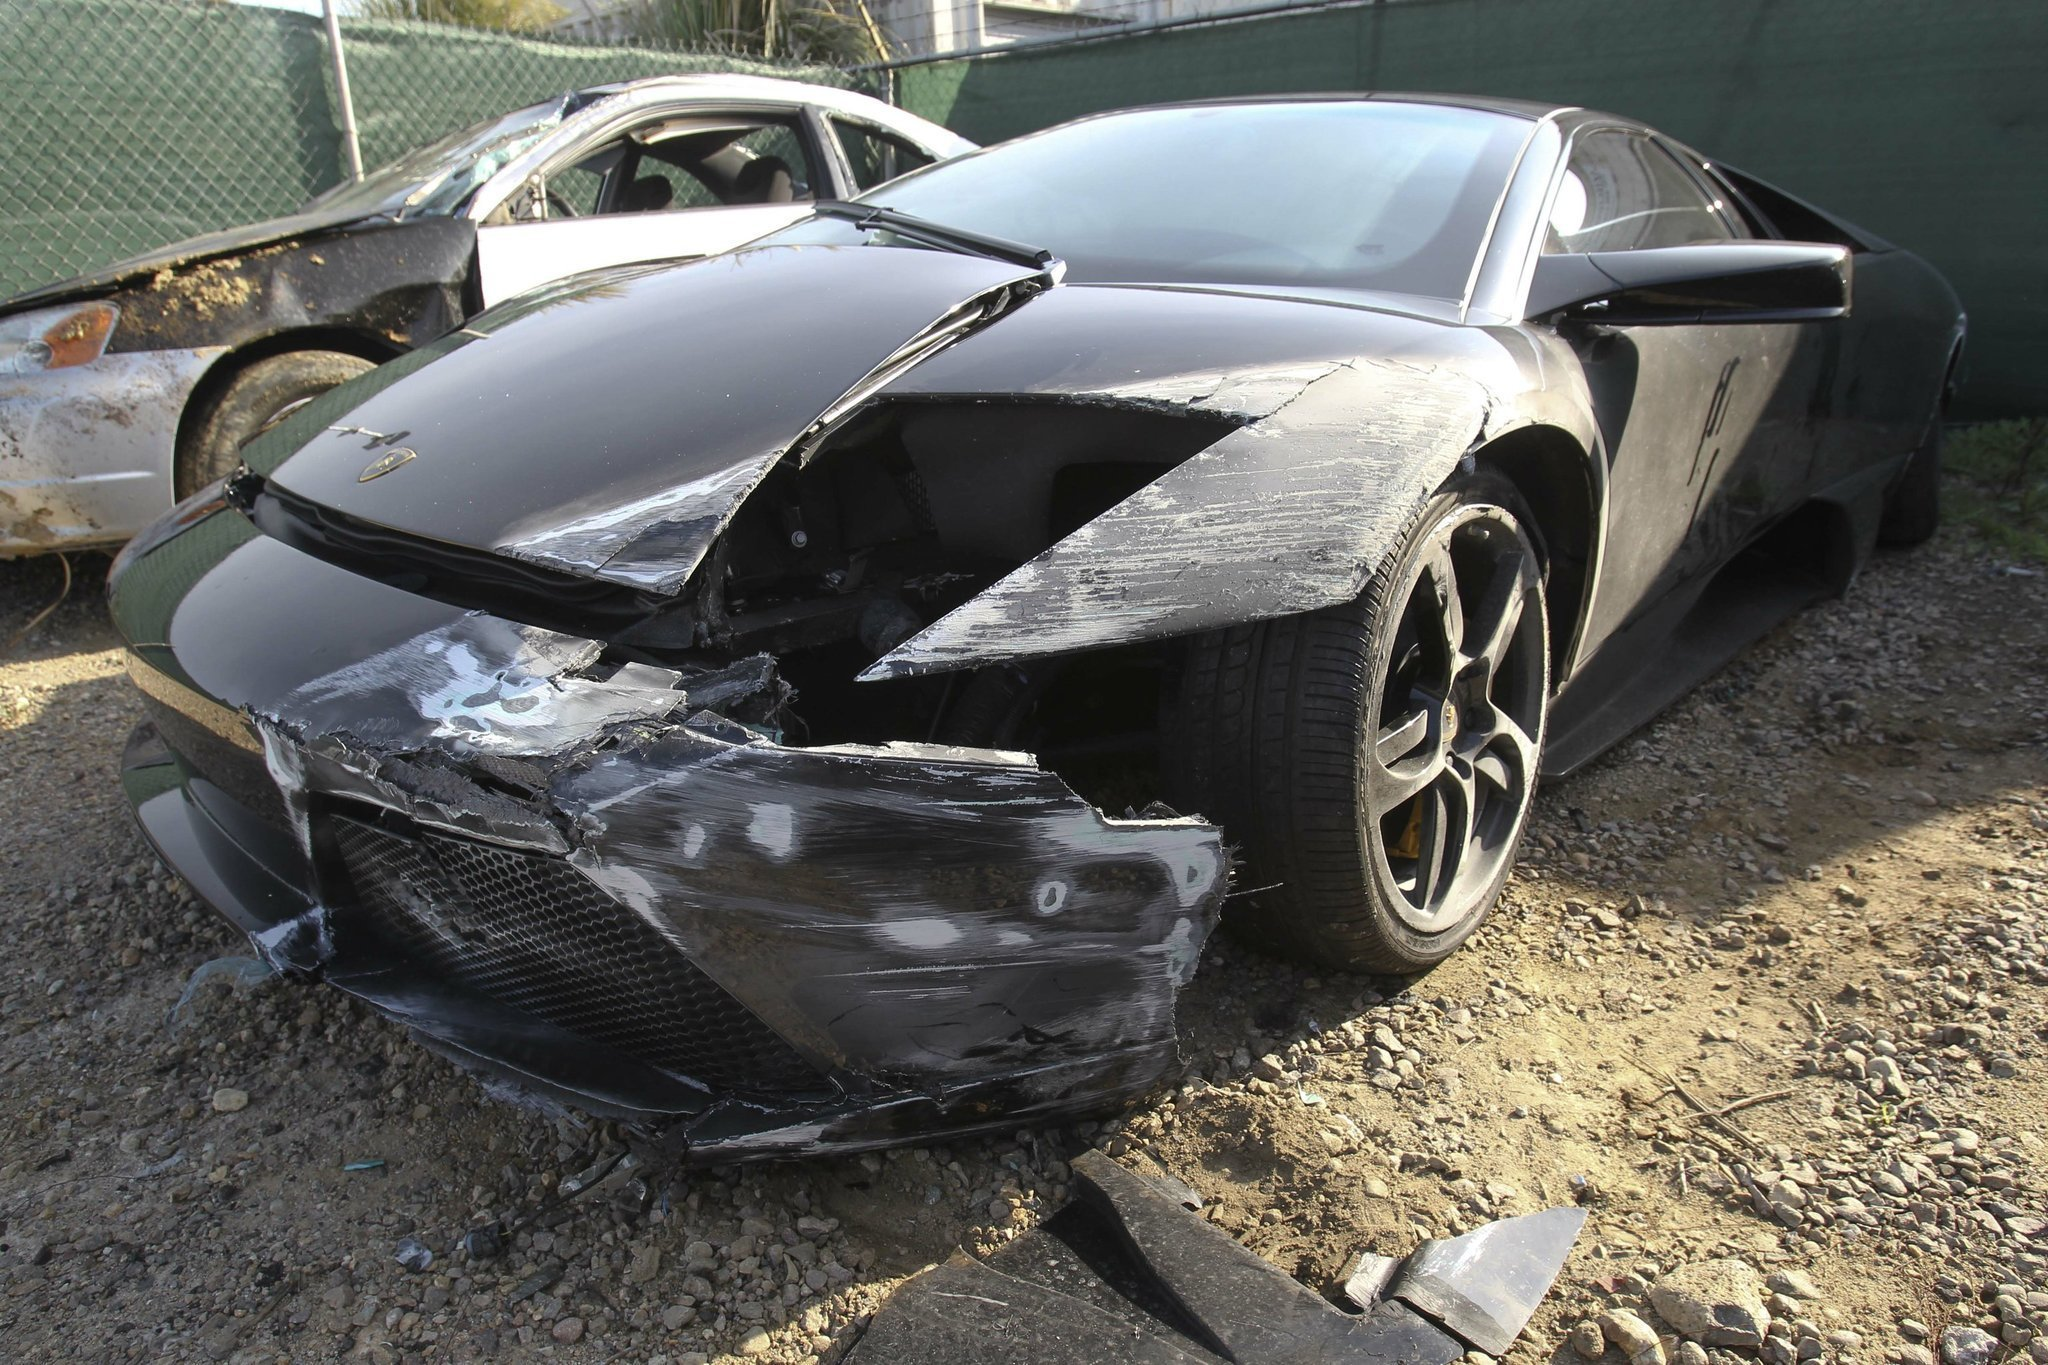 Cops No New Leads In Lamborghini Crash The San Diego